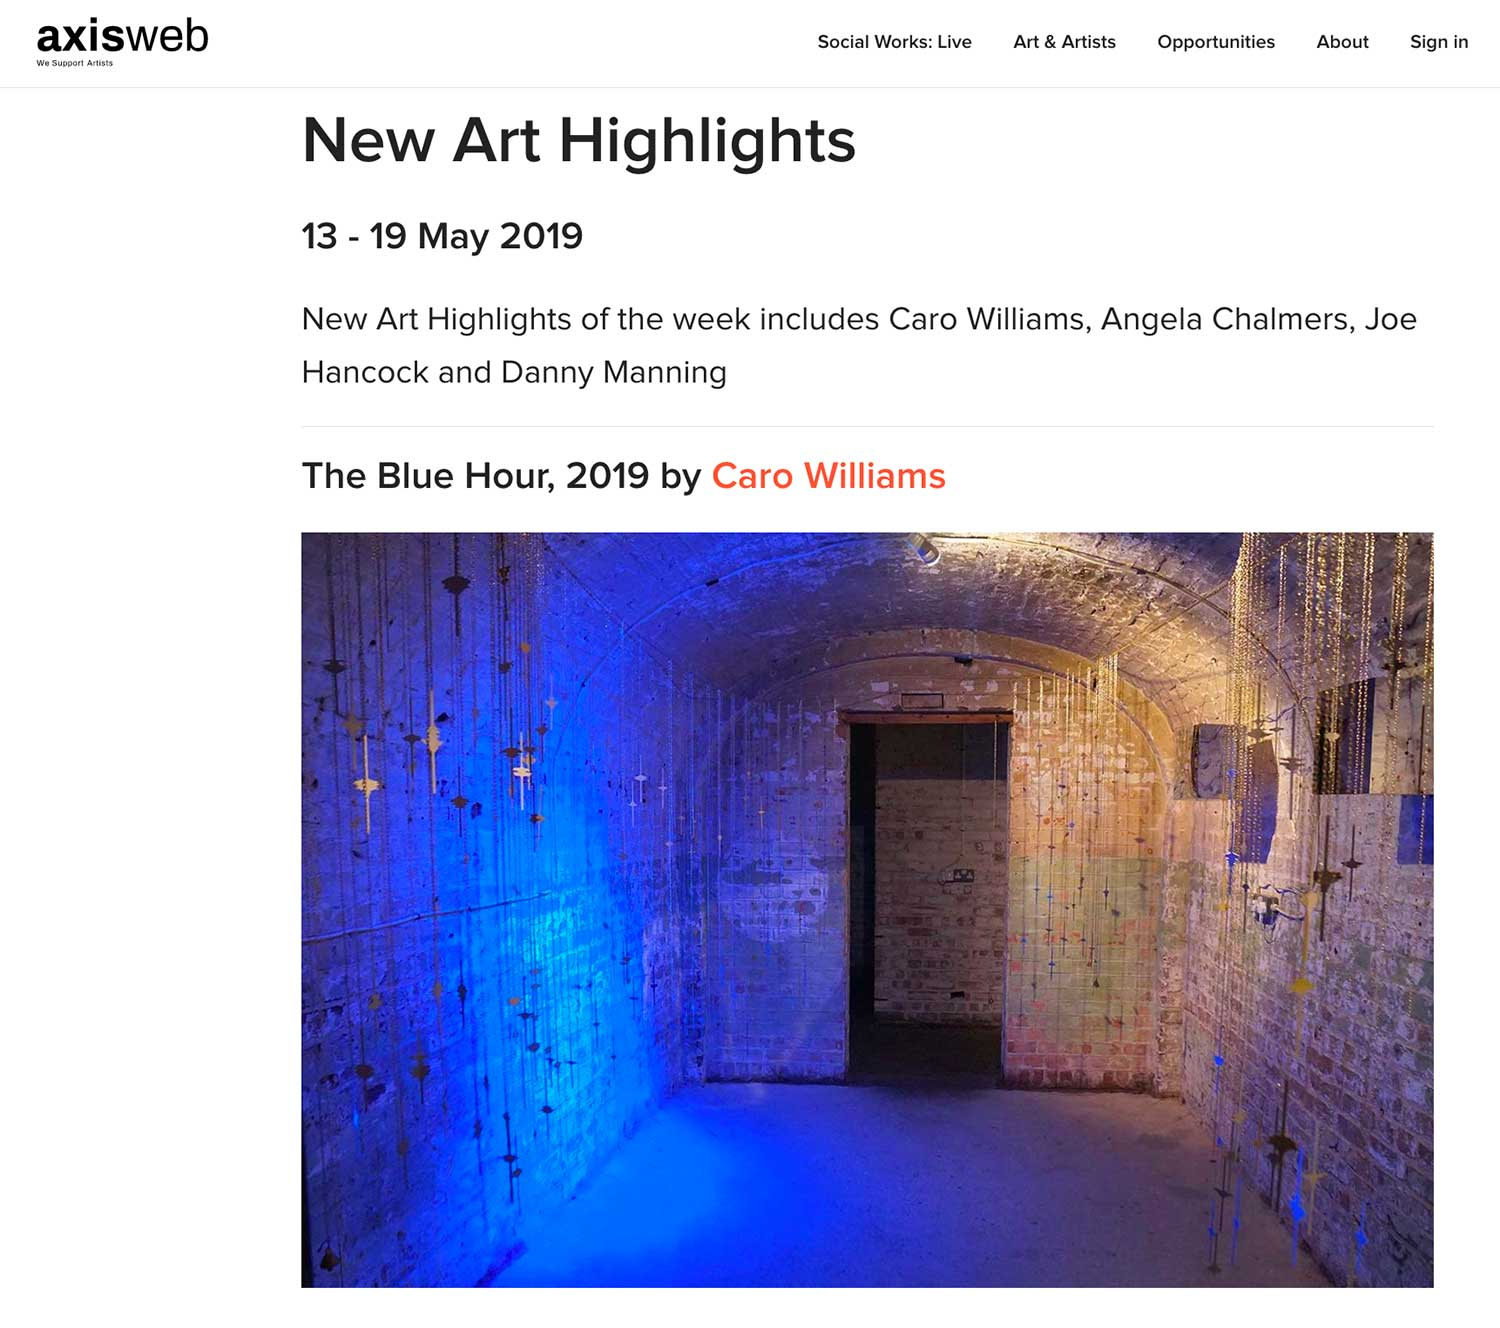 Delighted that The Blue Hour has been selected selected for inclusion in Axisweb's weekly 'Highlights' section.   https://www.axisweb.org/highlights/2019/new-art-highlights-13-19-may/